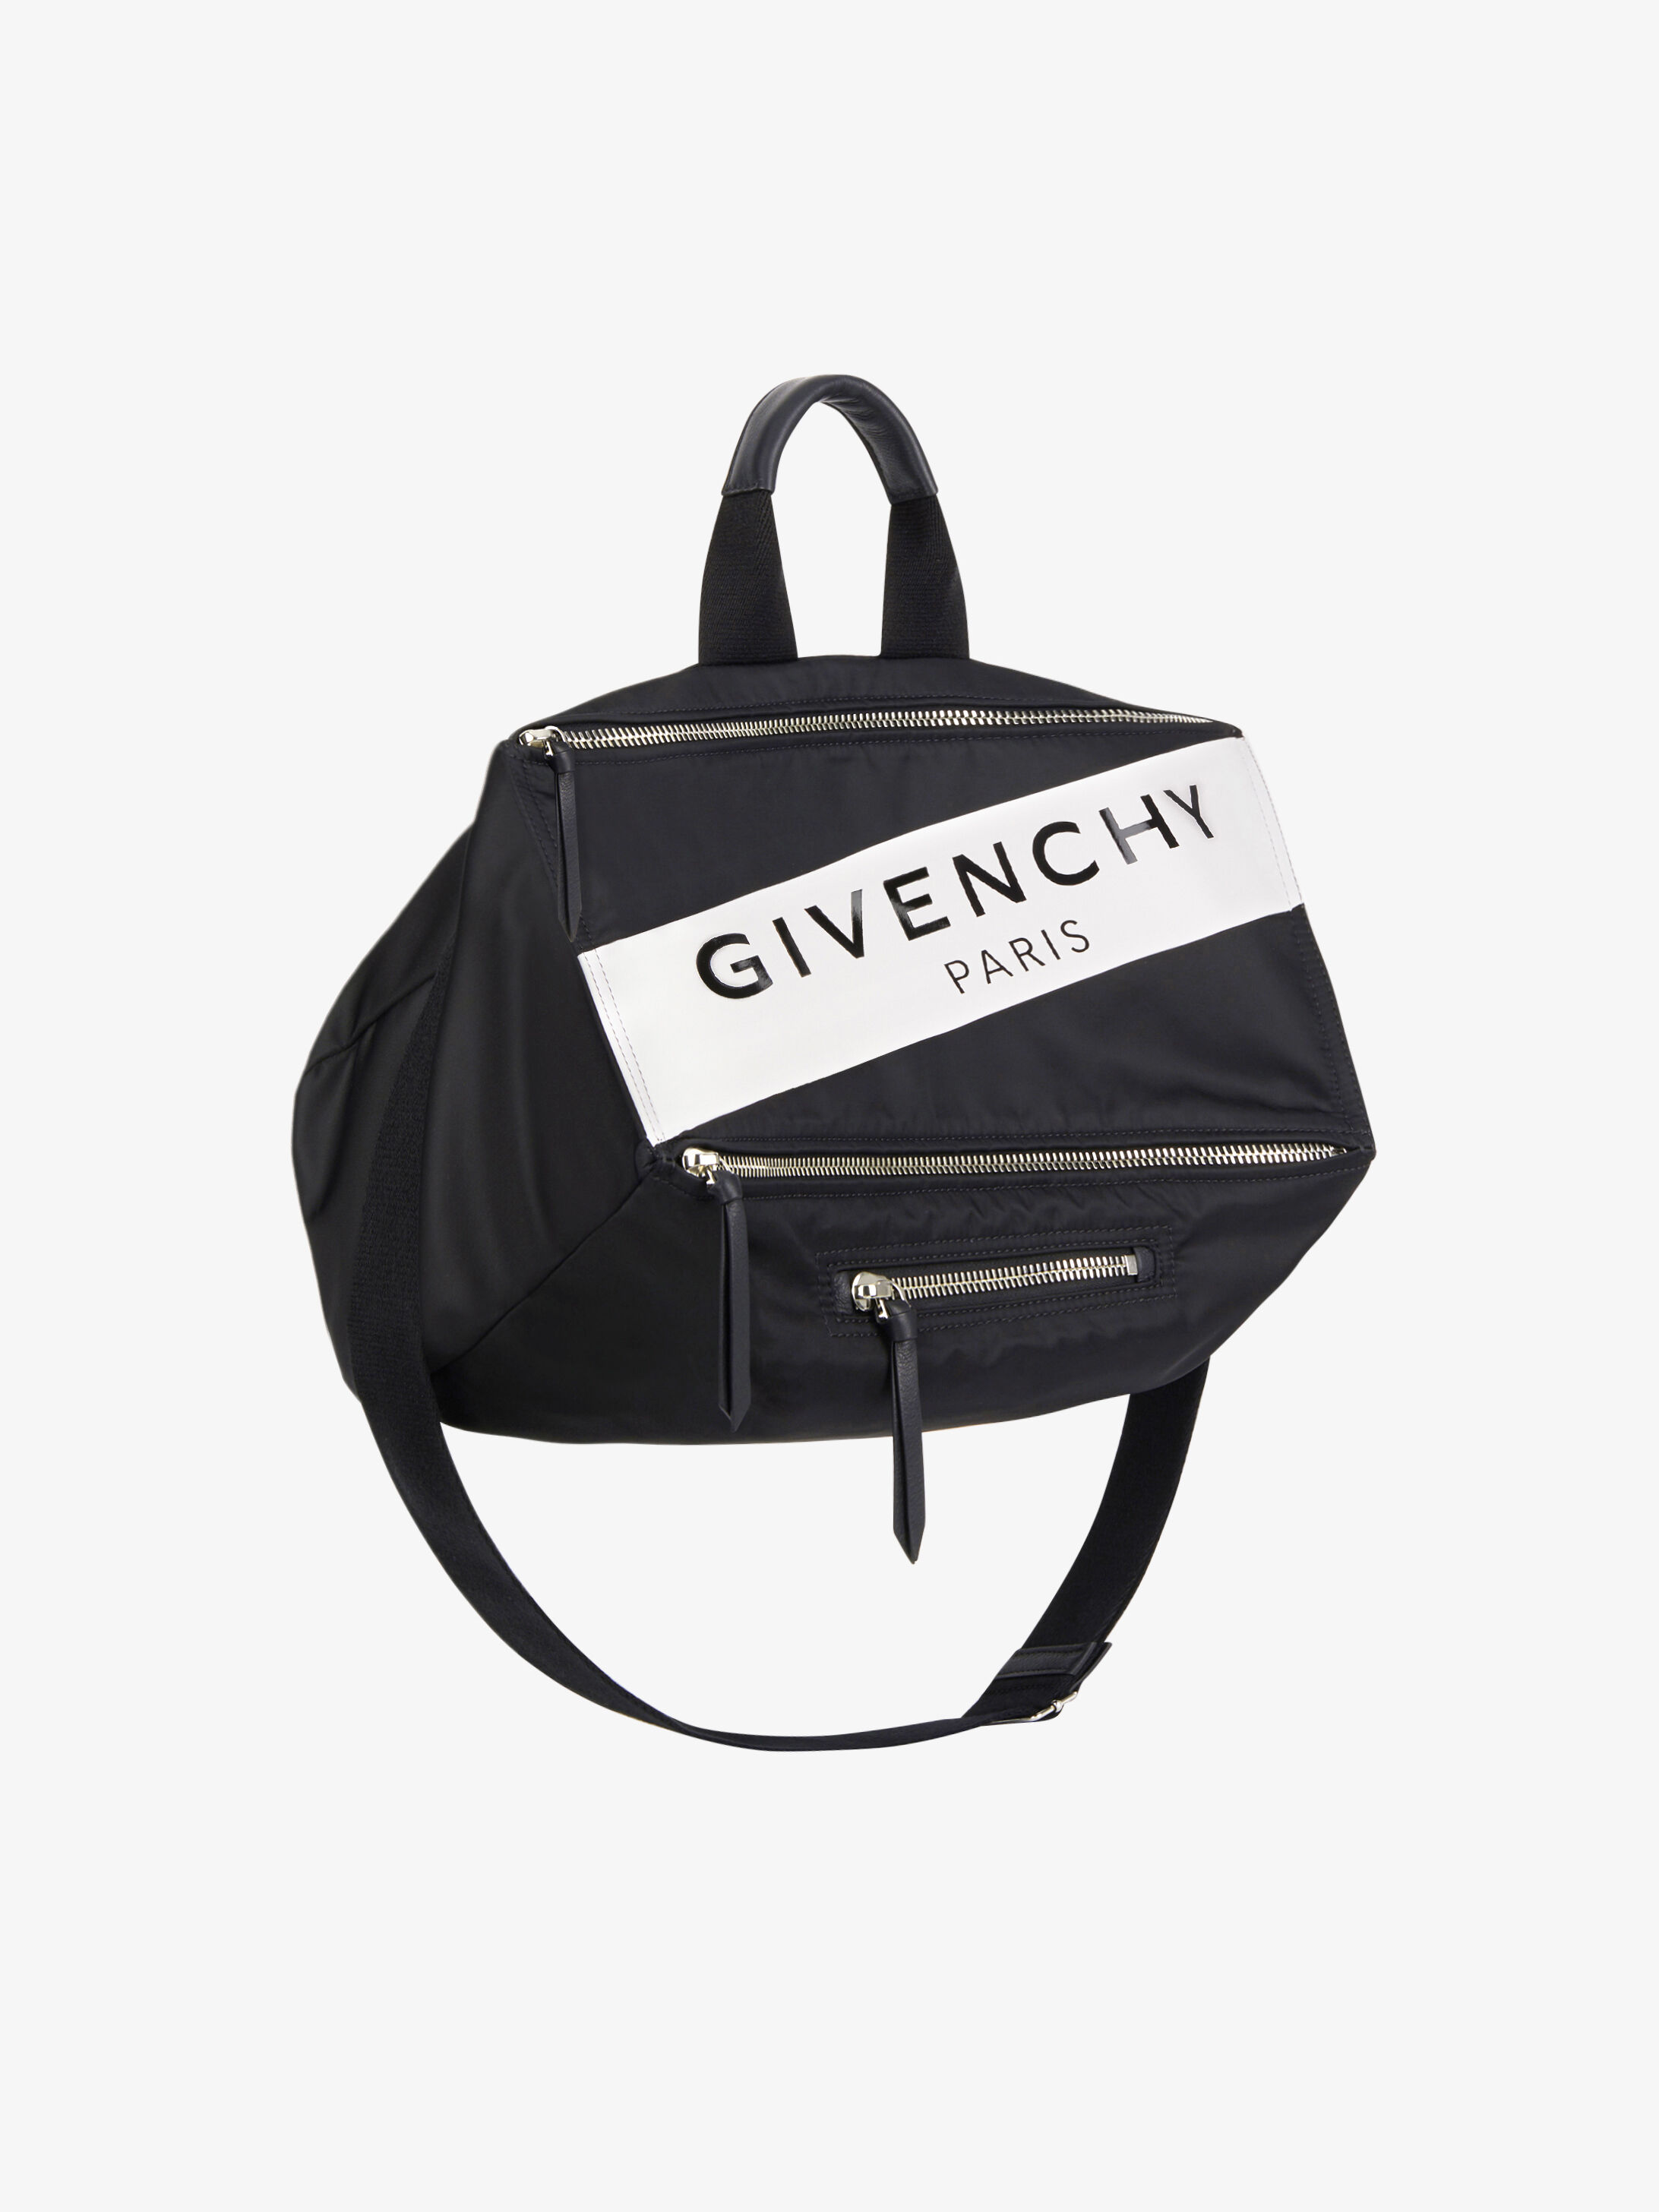 3eec0a61 Men's Cross-body Bags collection by Givenchy. | GIVENCHY Paris